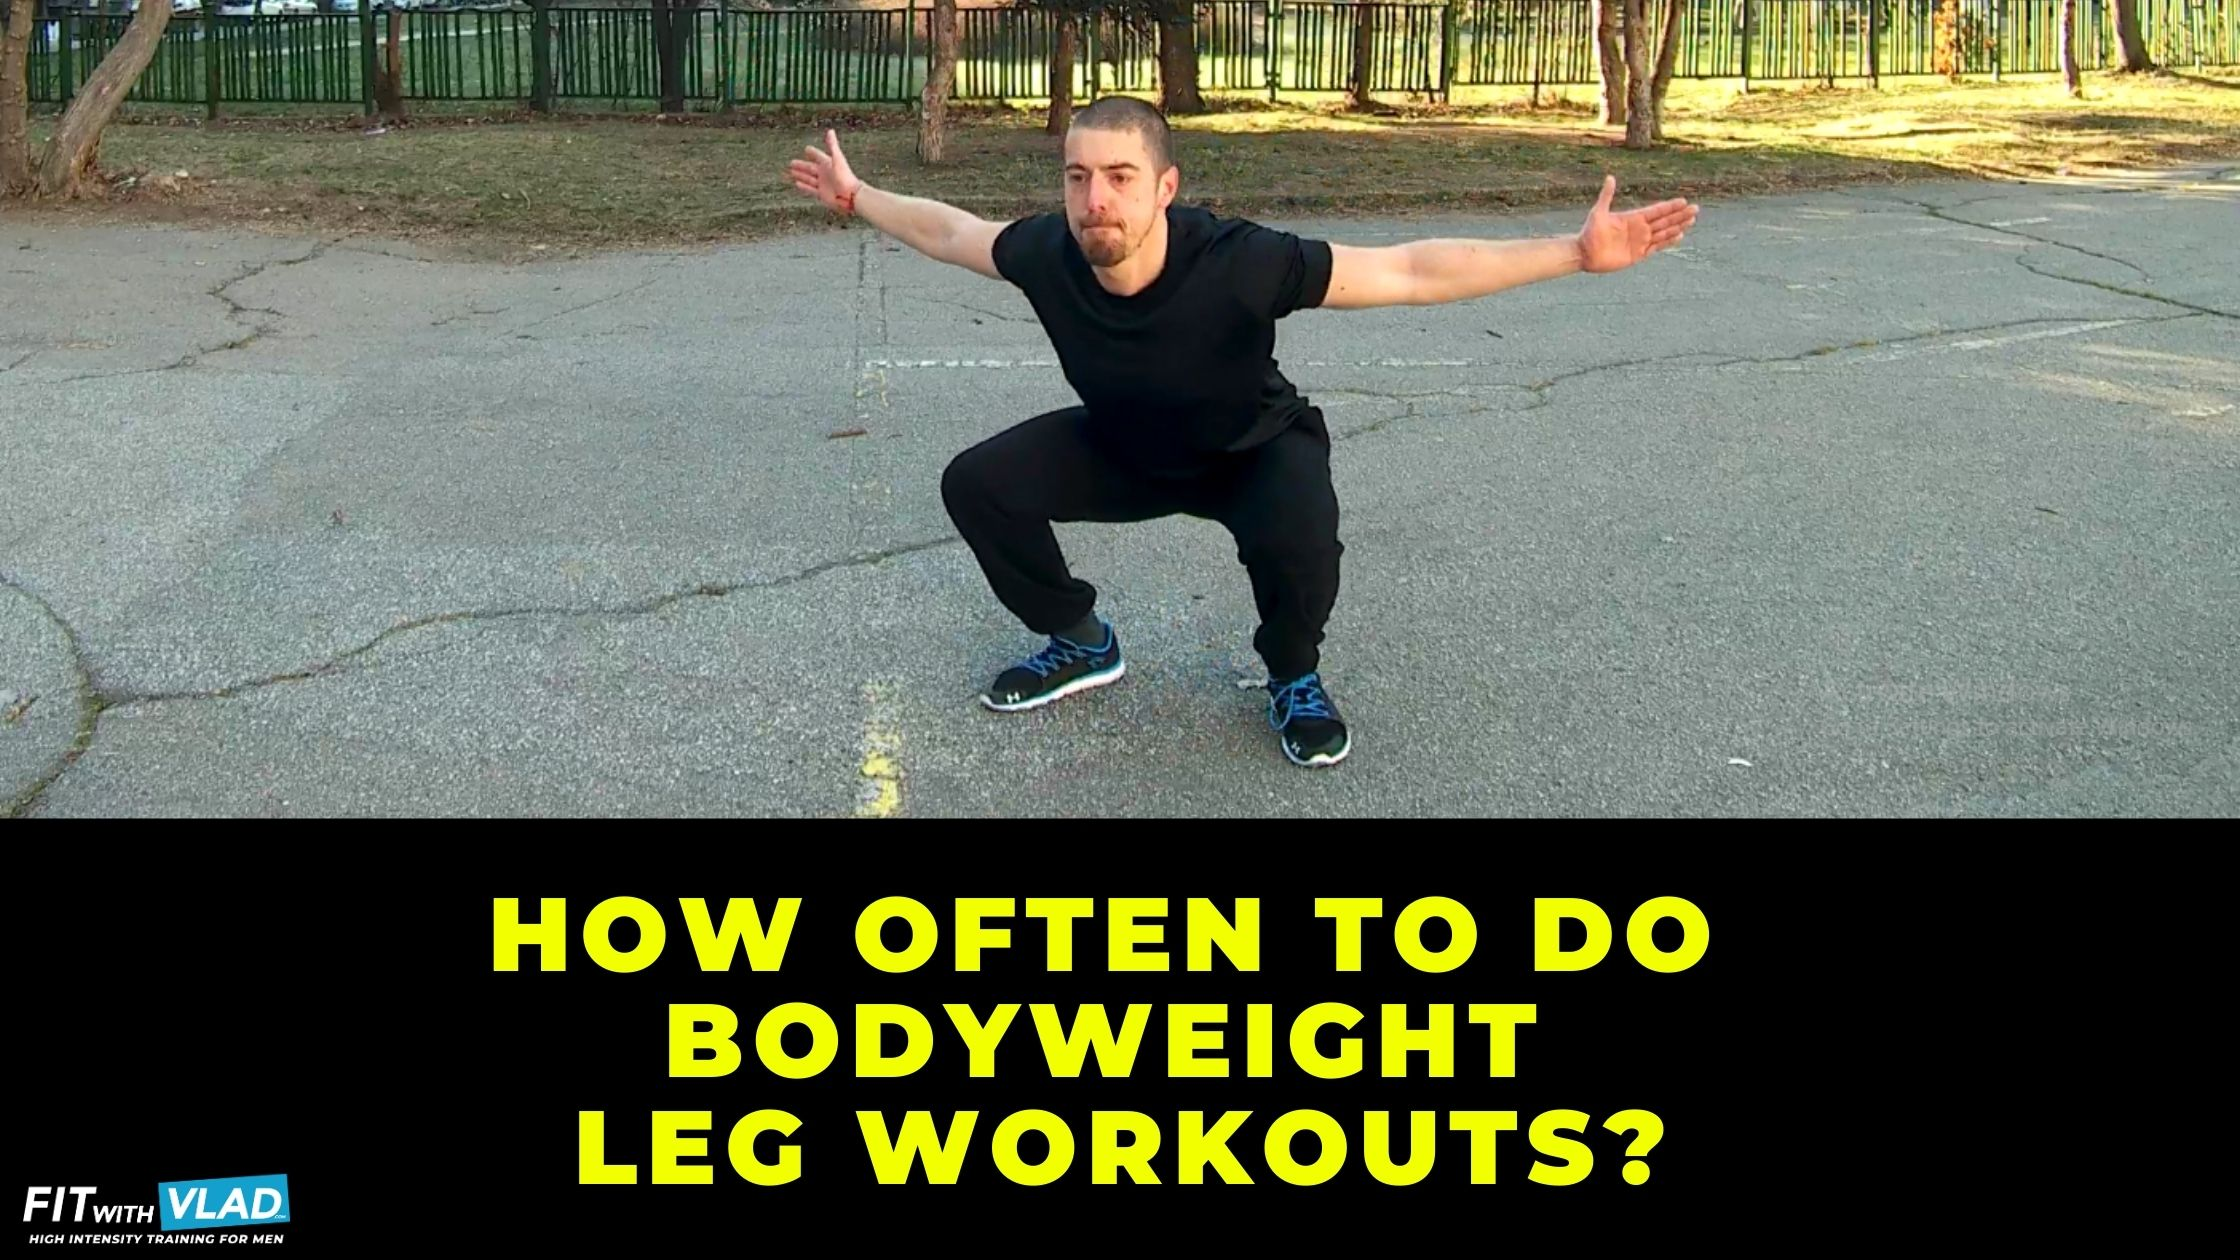 How often to do bodyweight leg workouts at home